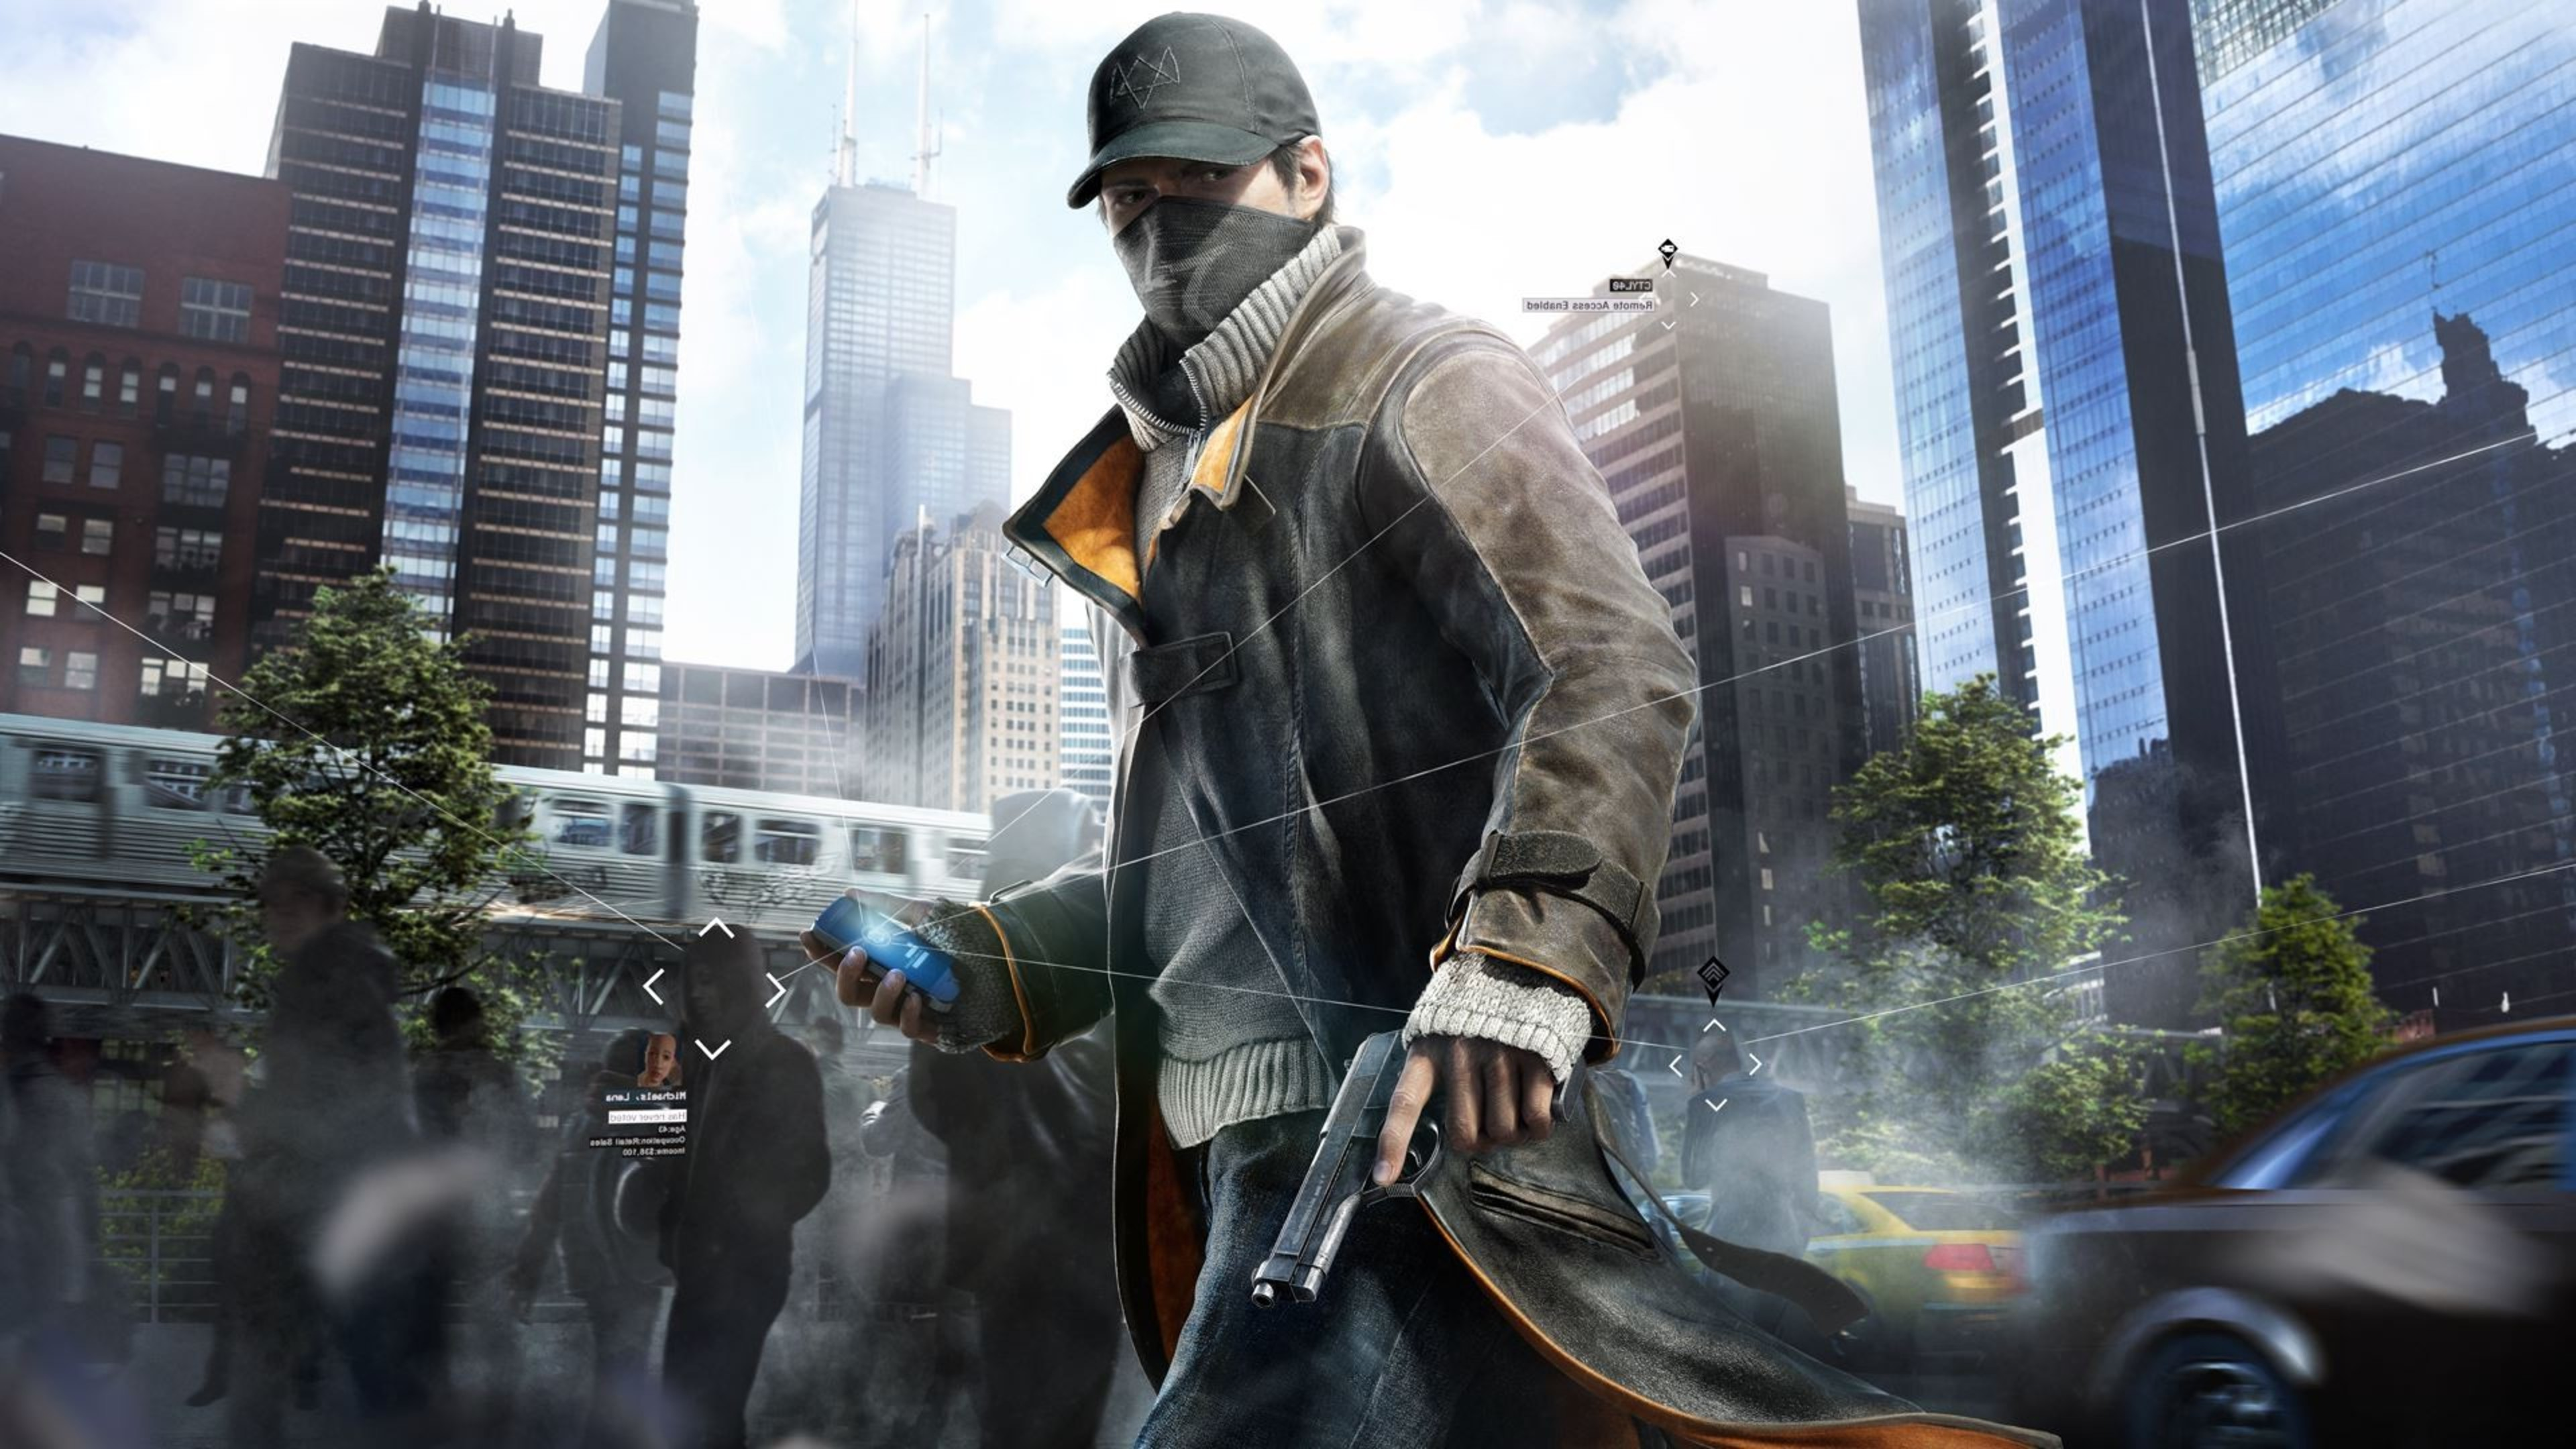 2560x1440 watch dogs aiden pearce 1440p resolution hd 4k